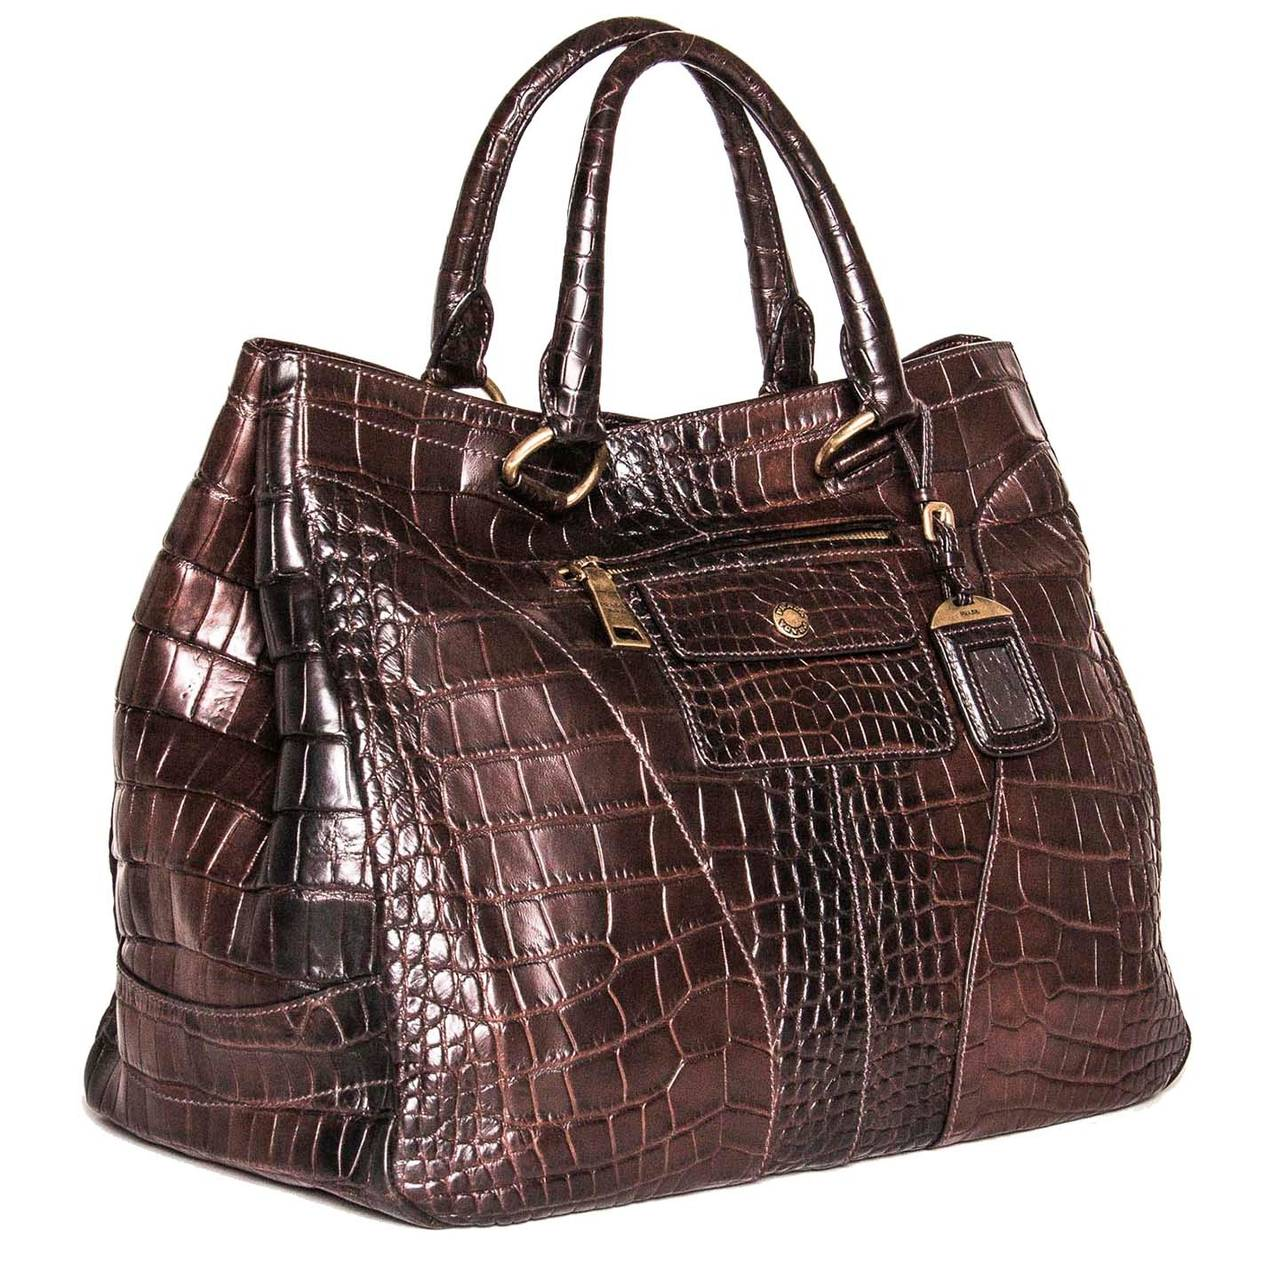 Burgundy distressed crocodile large bag with brass details. The leather is beautifully applied with round cuts on front and back corners, which make the bag look very elegant. Two chunky zippers follow the shape of the leather cuts at back, while